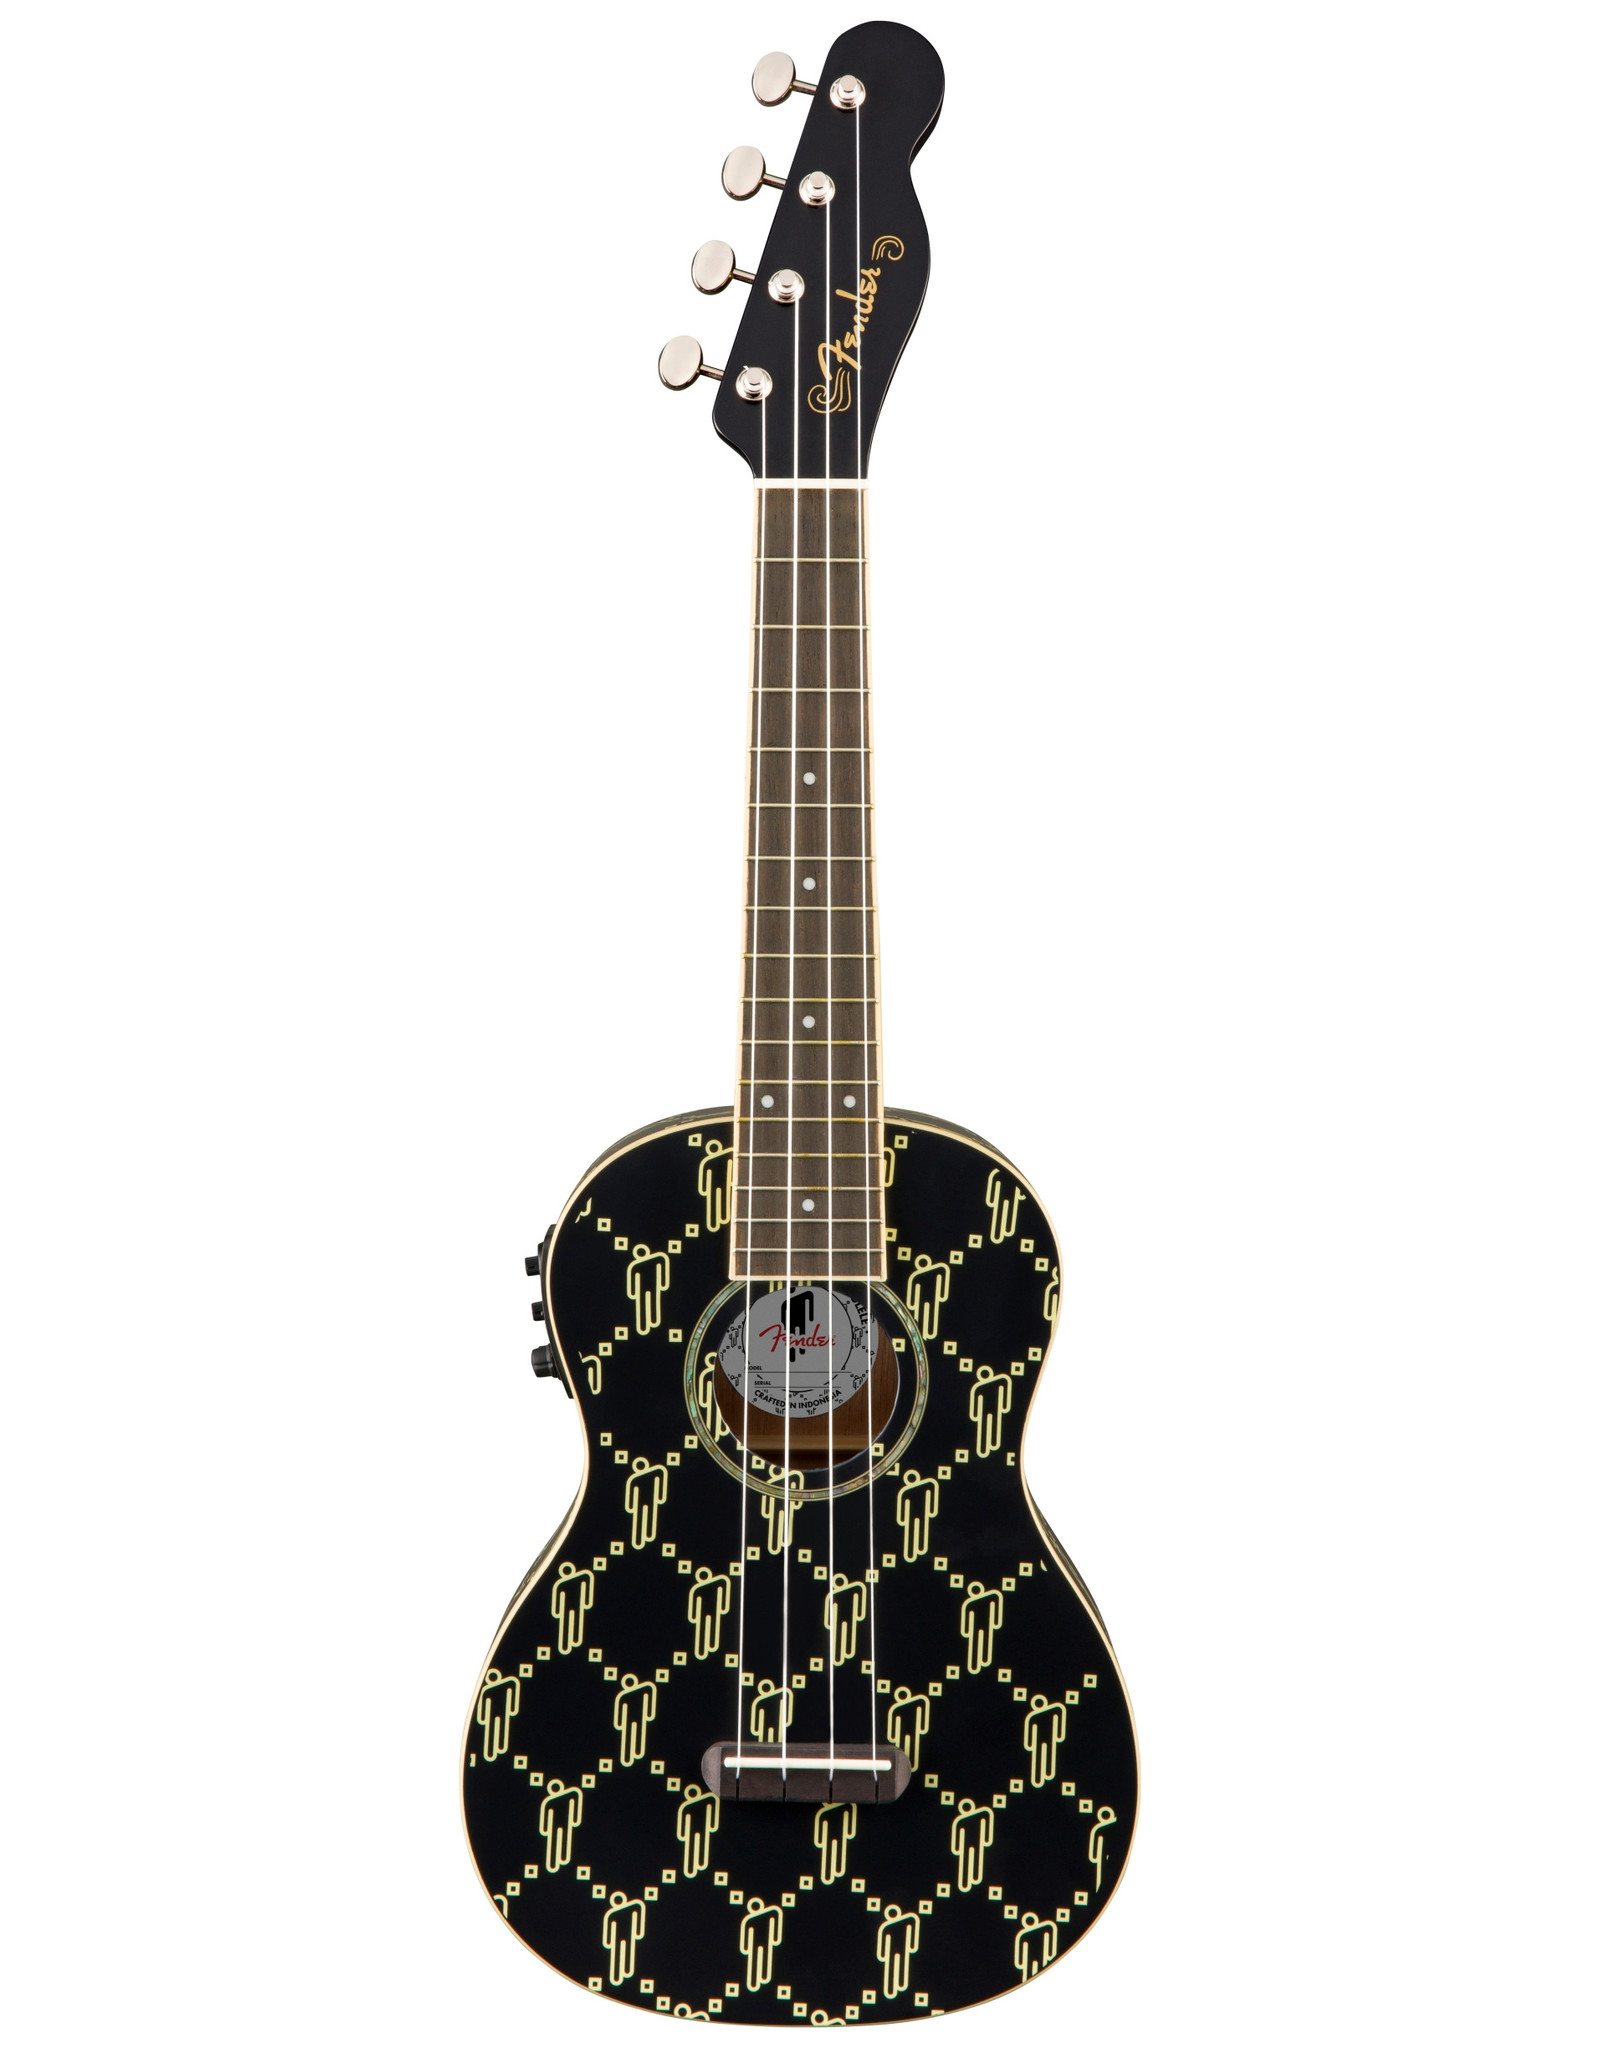 Fender Fender Billie Eilish Signature Concert Ukulele